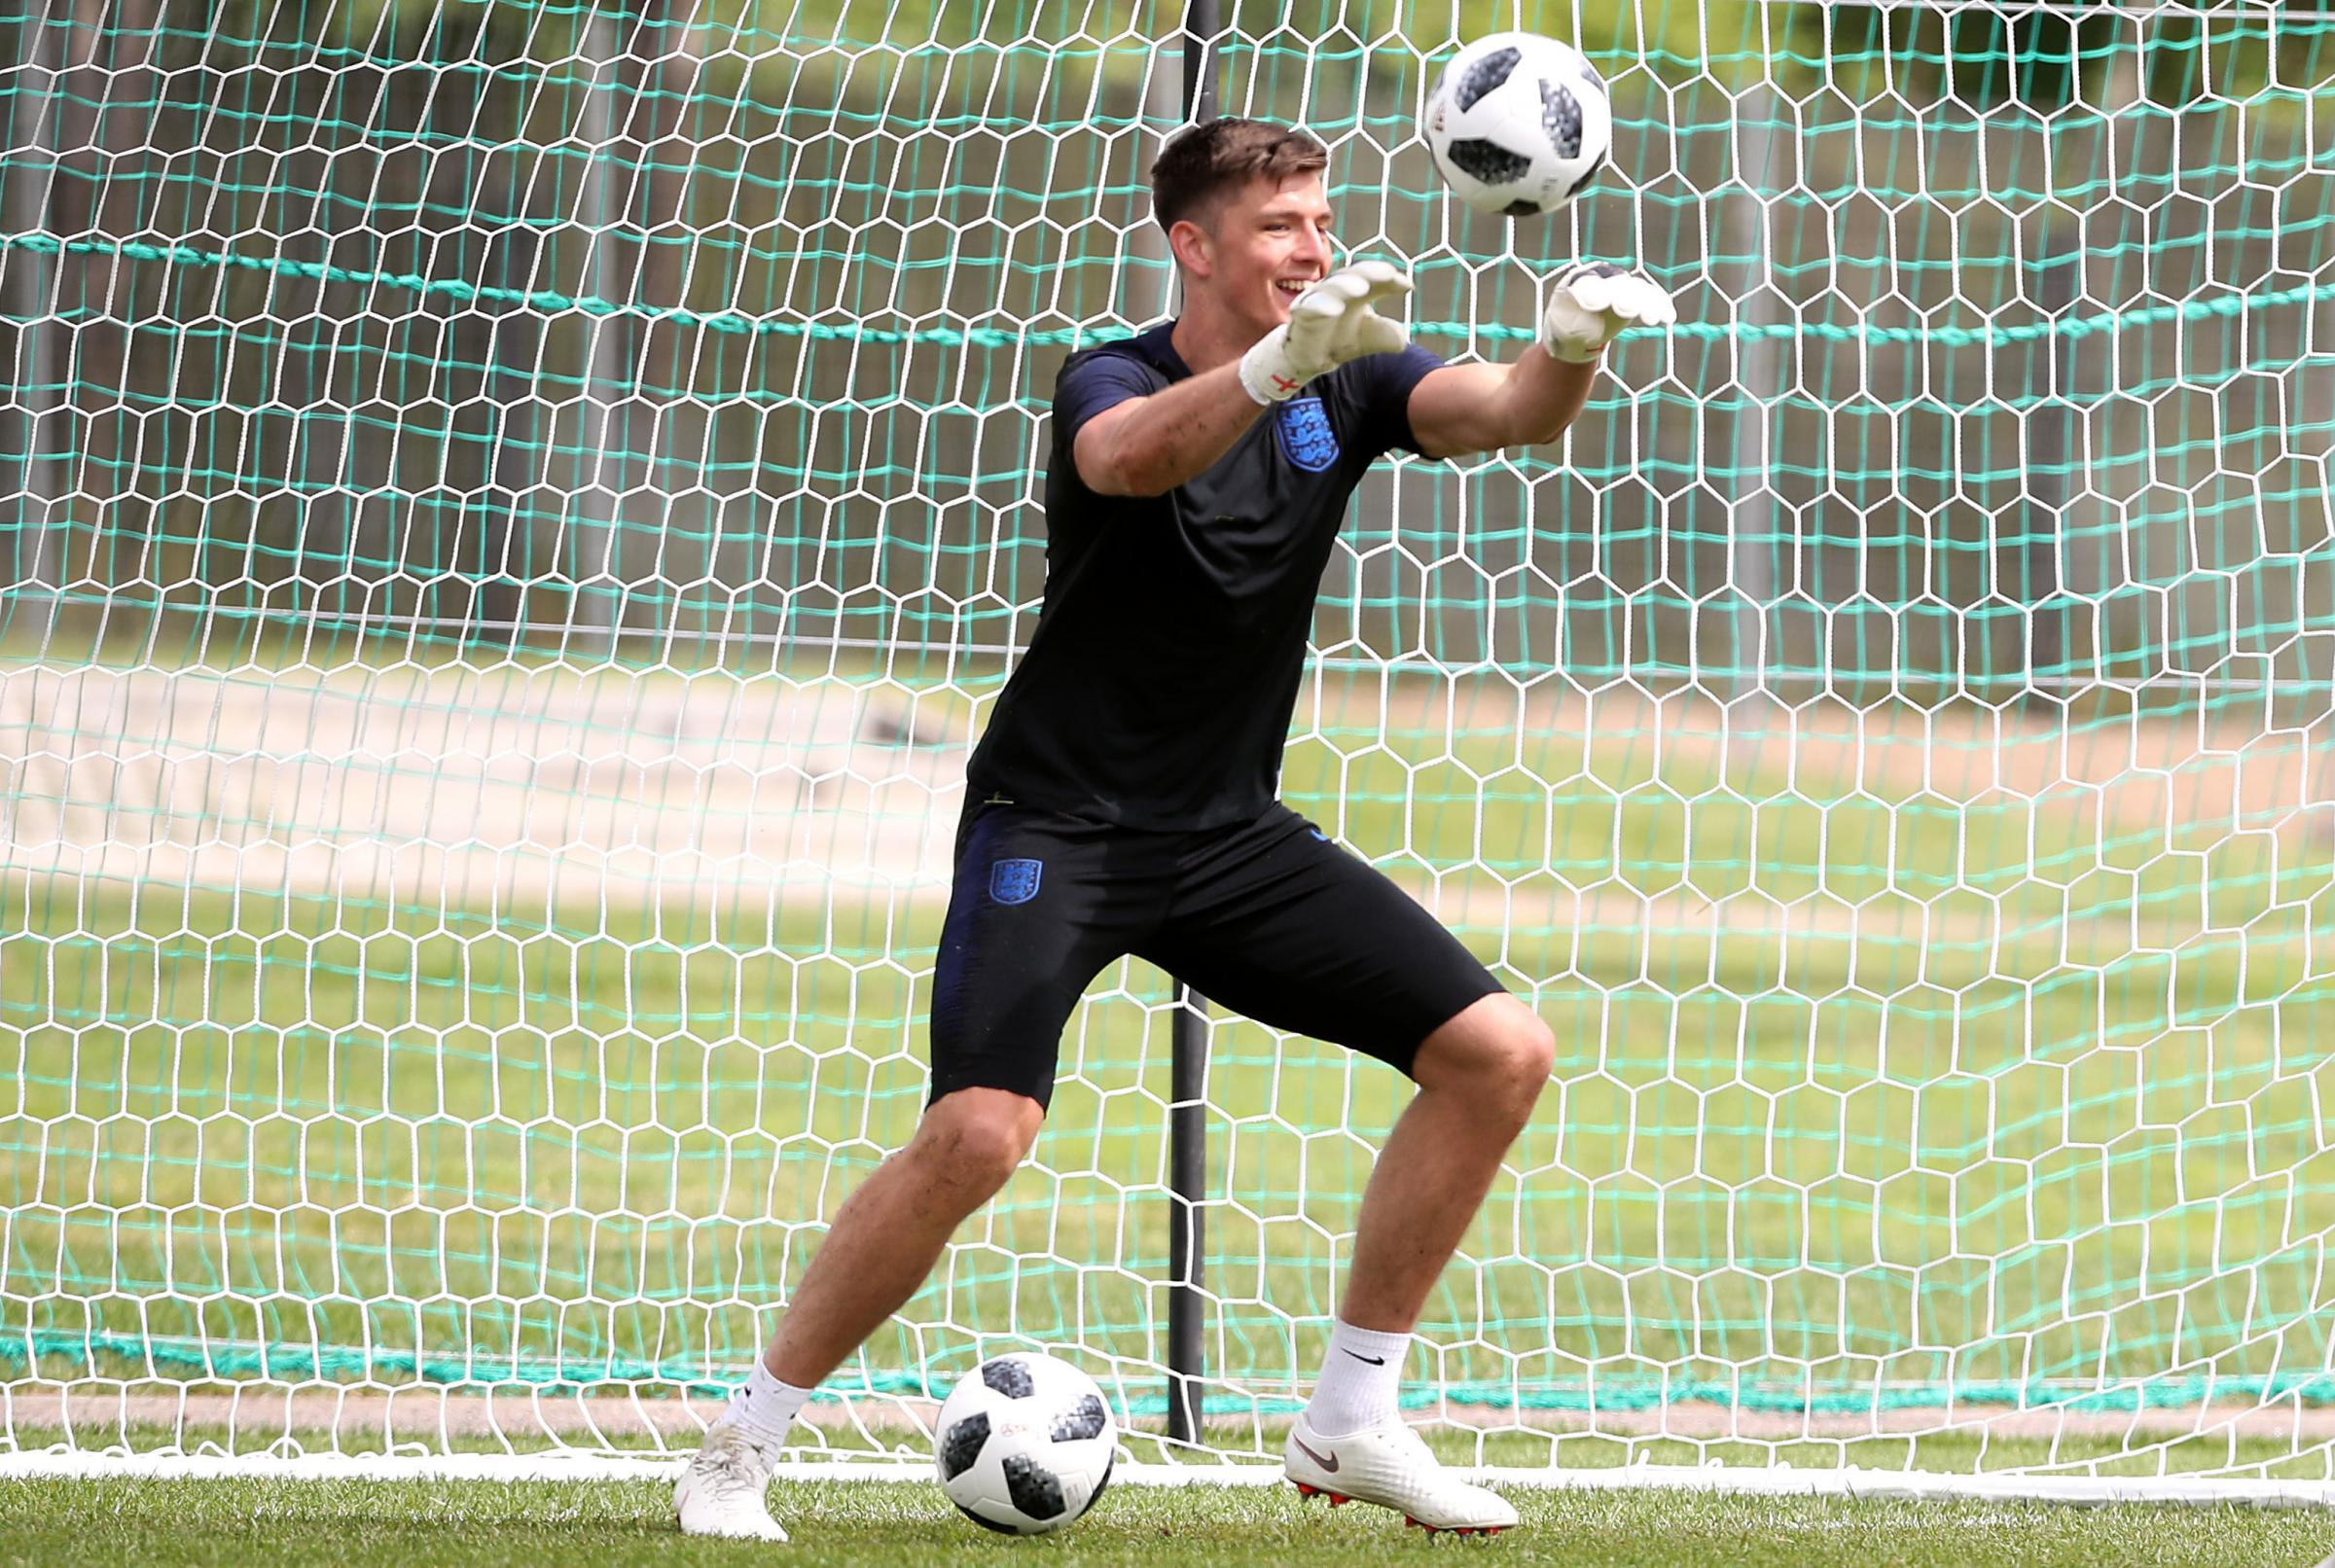 Safe hands - Colchester United under-23s came up against England international keeper Nick Pope Picture: Owen Humphreys/PA